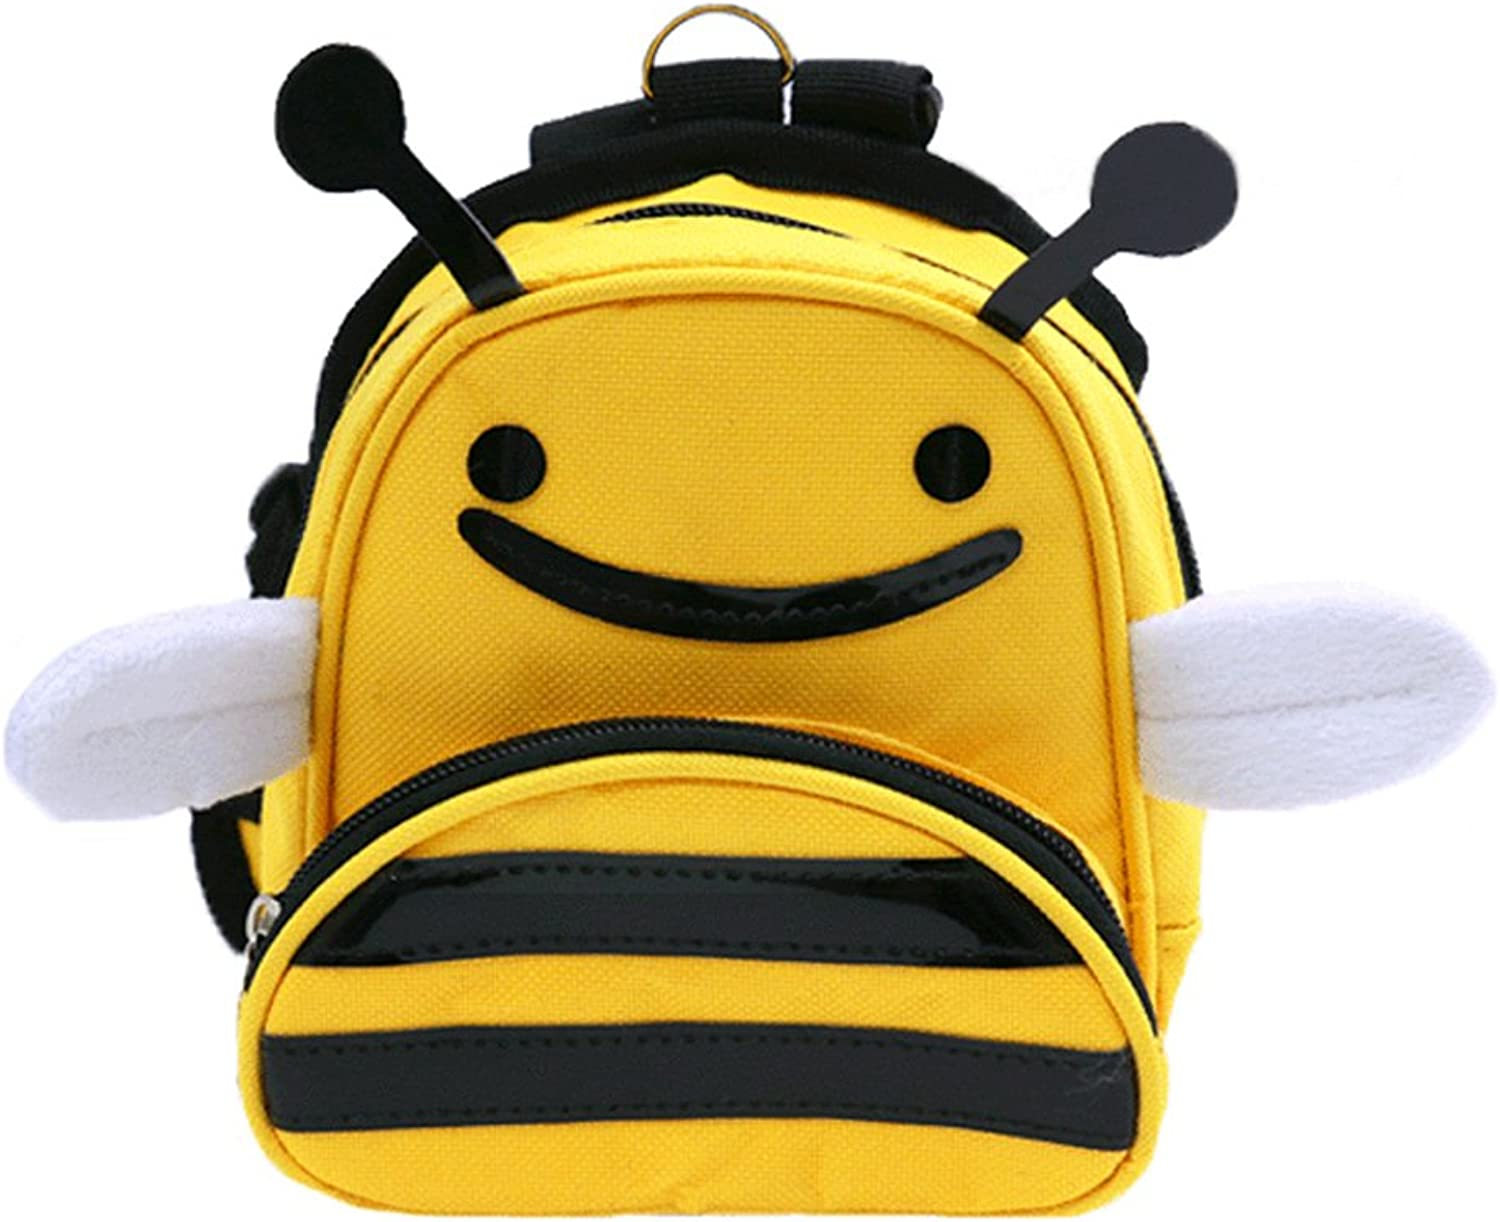 Honeybee Pet Bag Dog Travel Backpack for Medium Dog